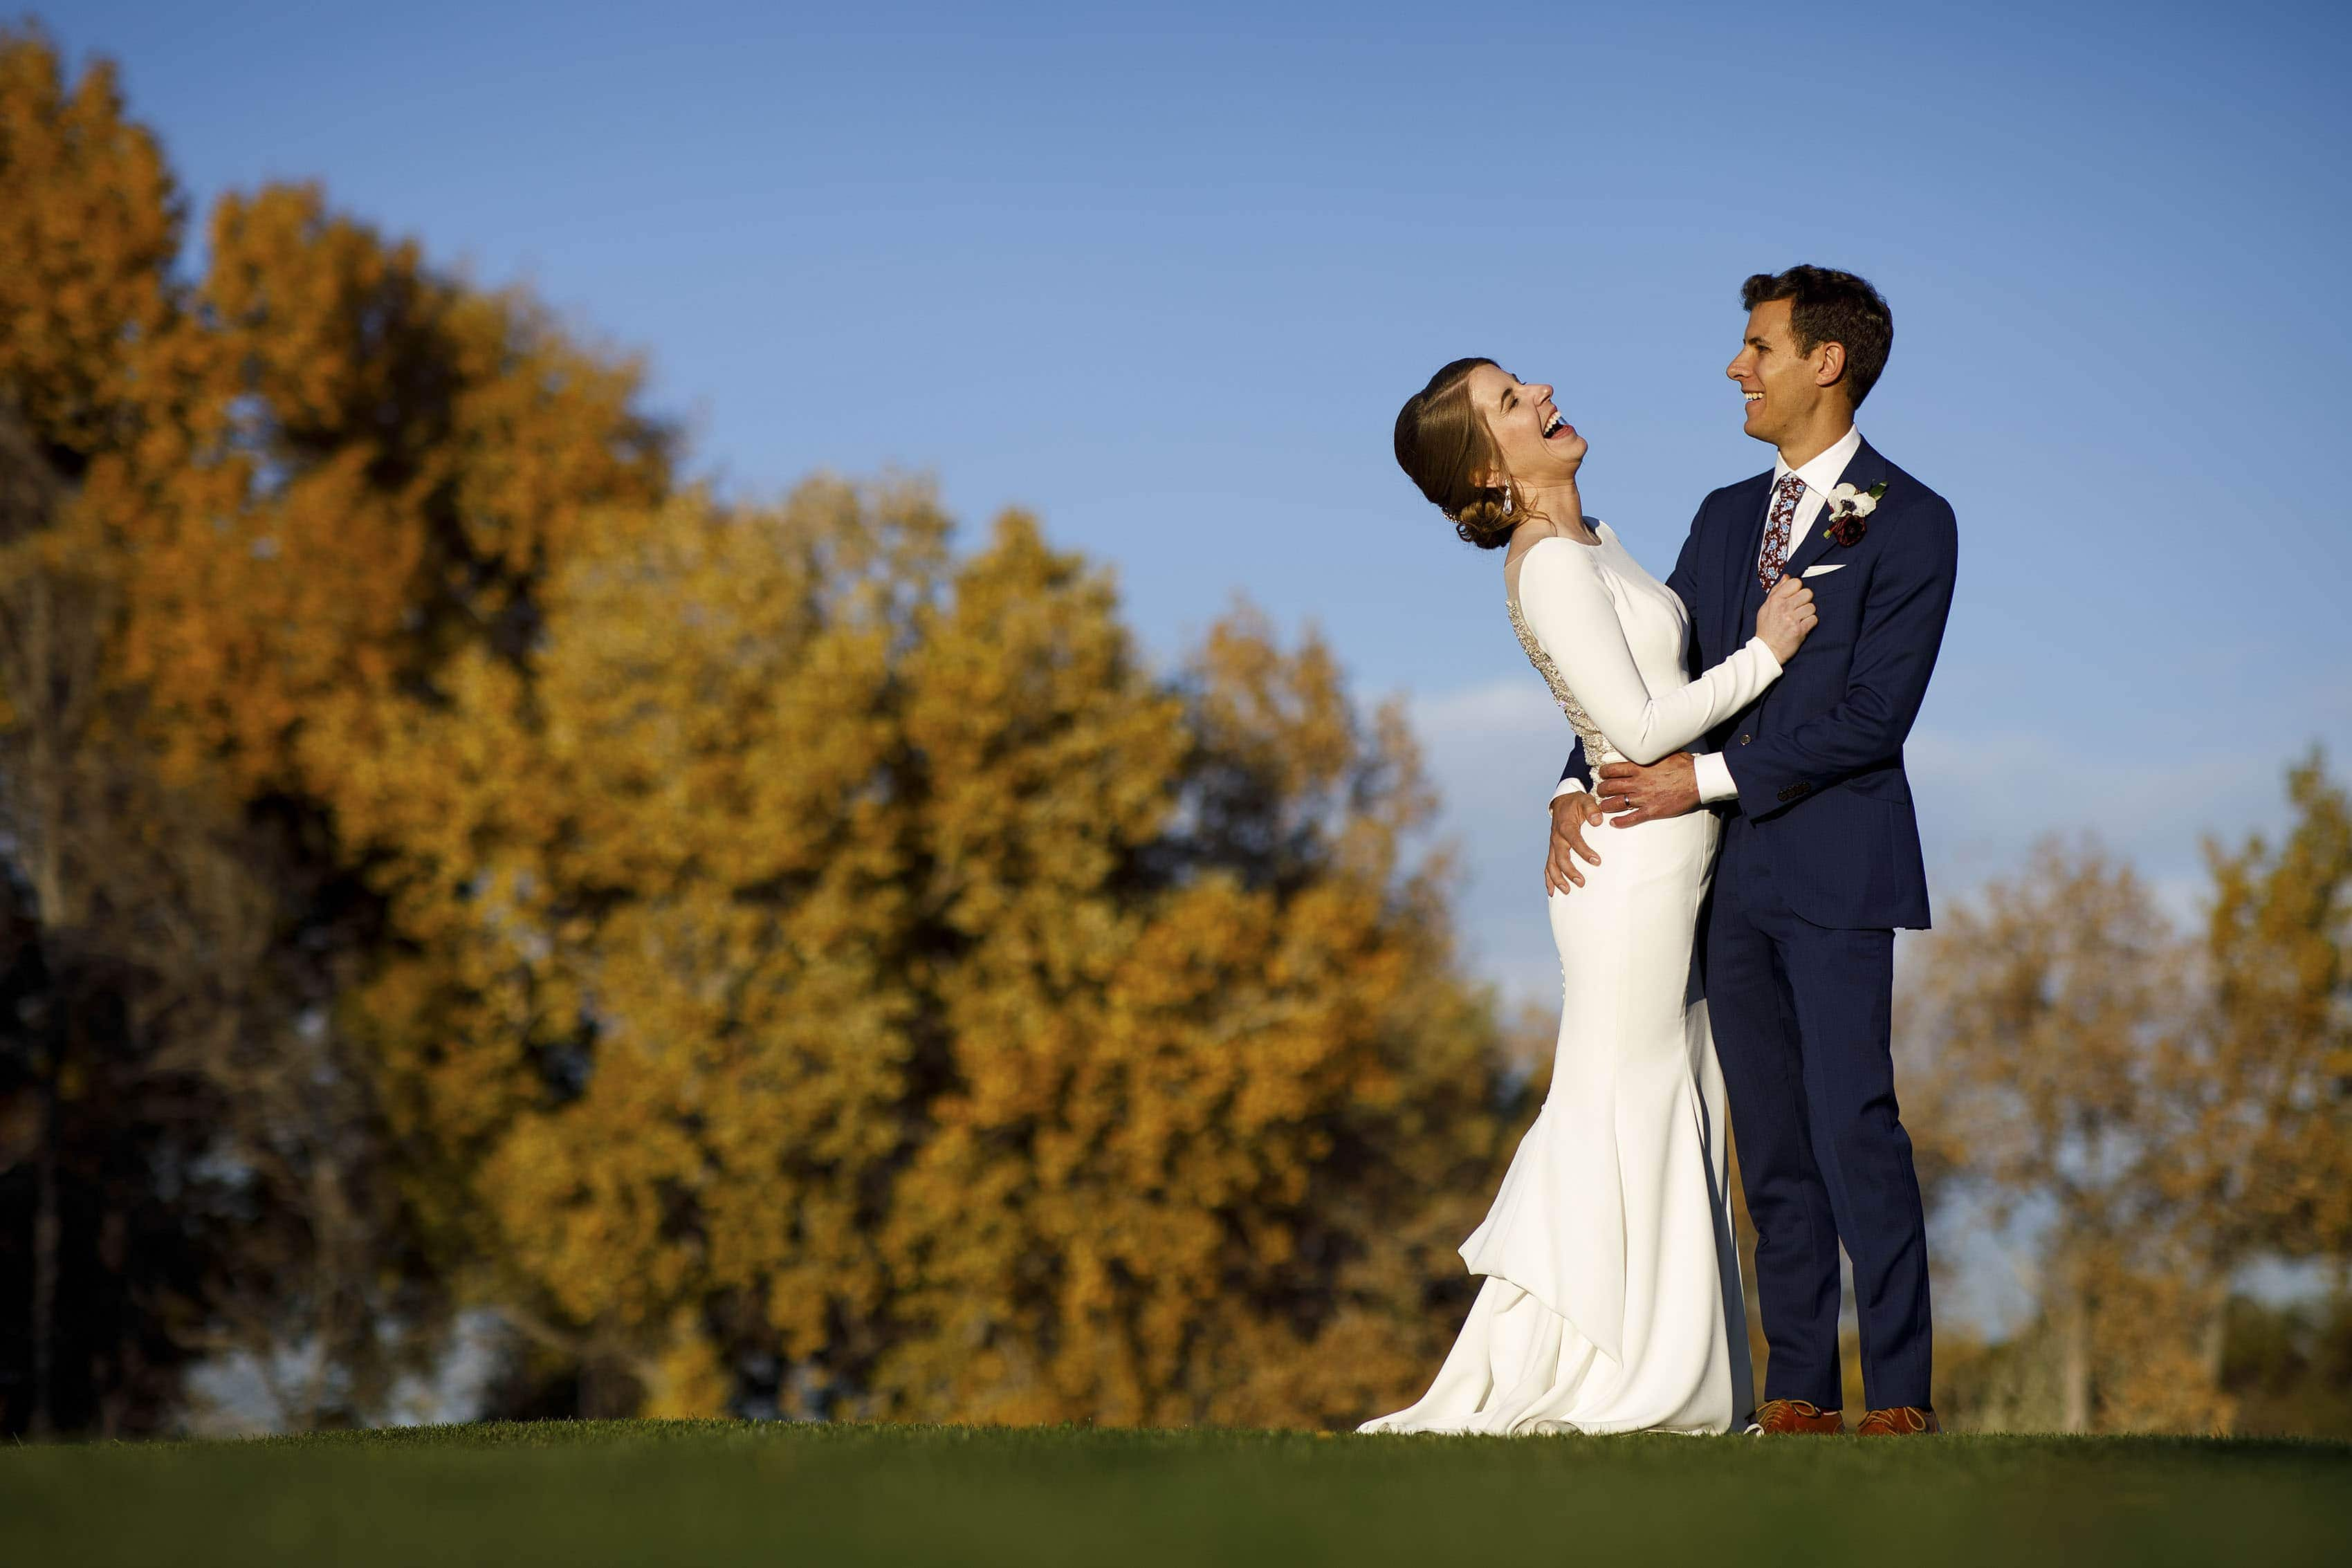 Jessica and Mike laugh outside during their wedding at The Vista at Applewood Golf Course